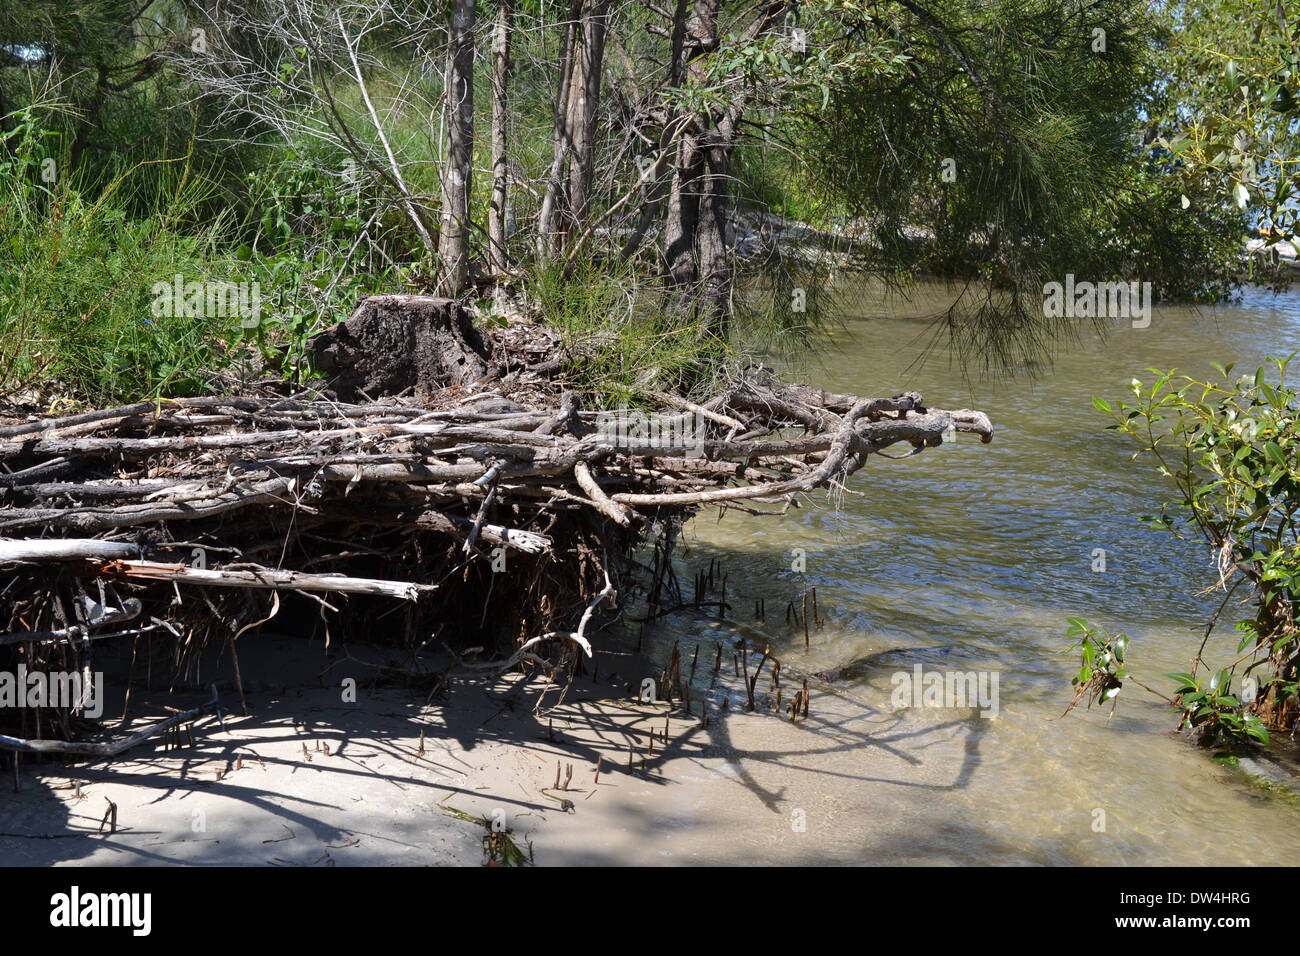 Coastal erosion exposing the roots of nearby trees and mangroves - Stock Image